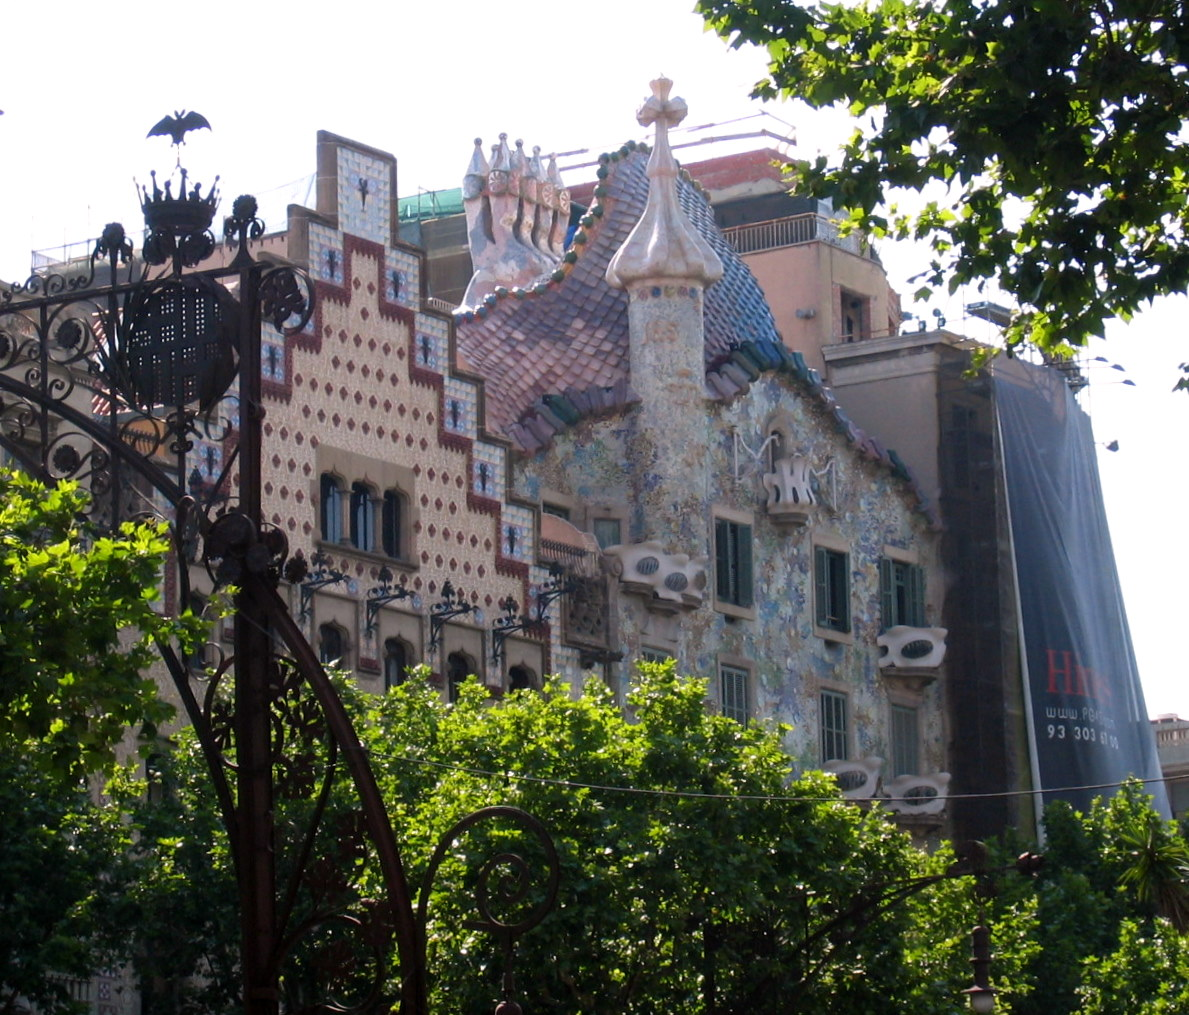 Sangria Sol y Siesta GAUDI THE ARTIST OF THE UNFINISHED